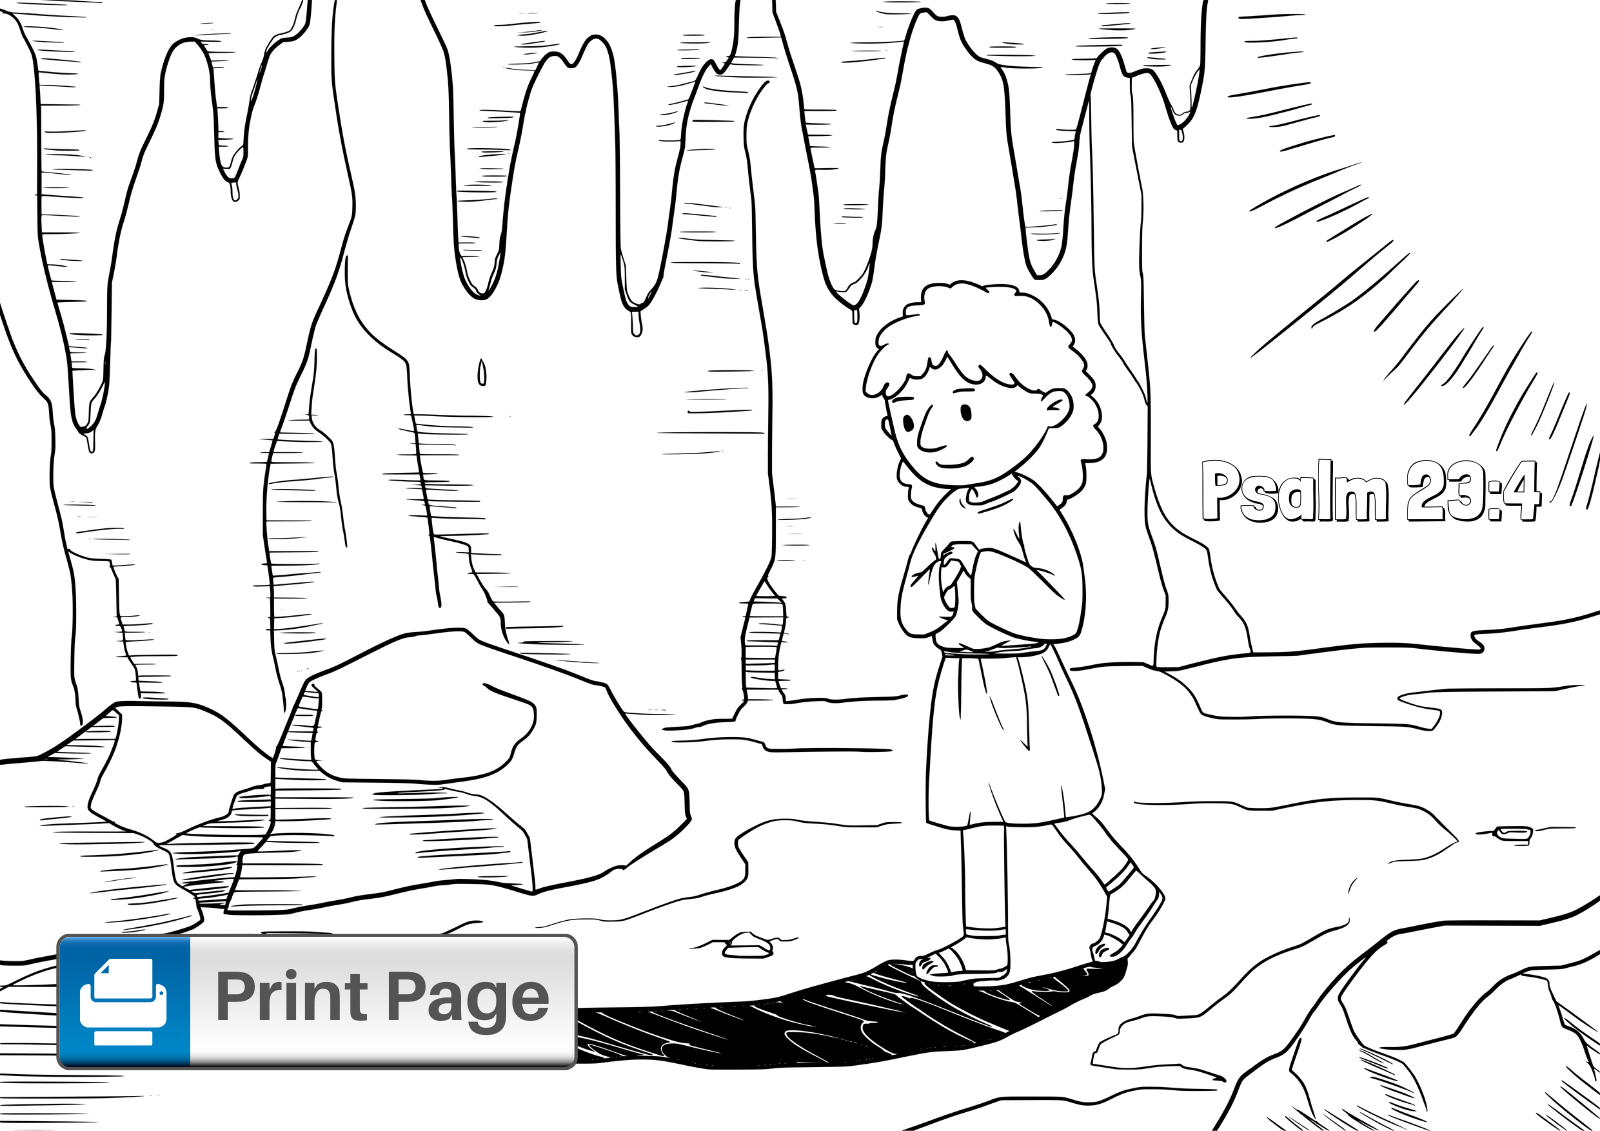 Psalm 23 Coloring Sheet